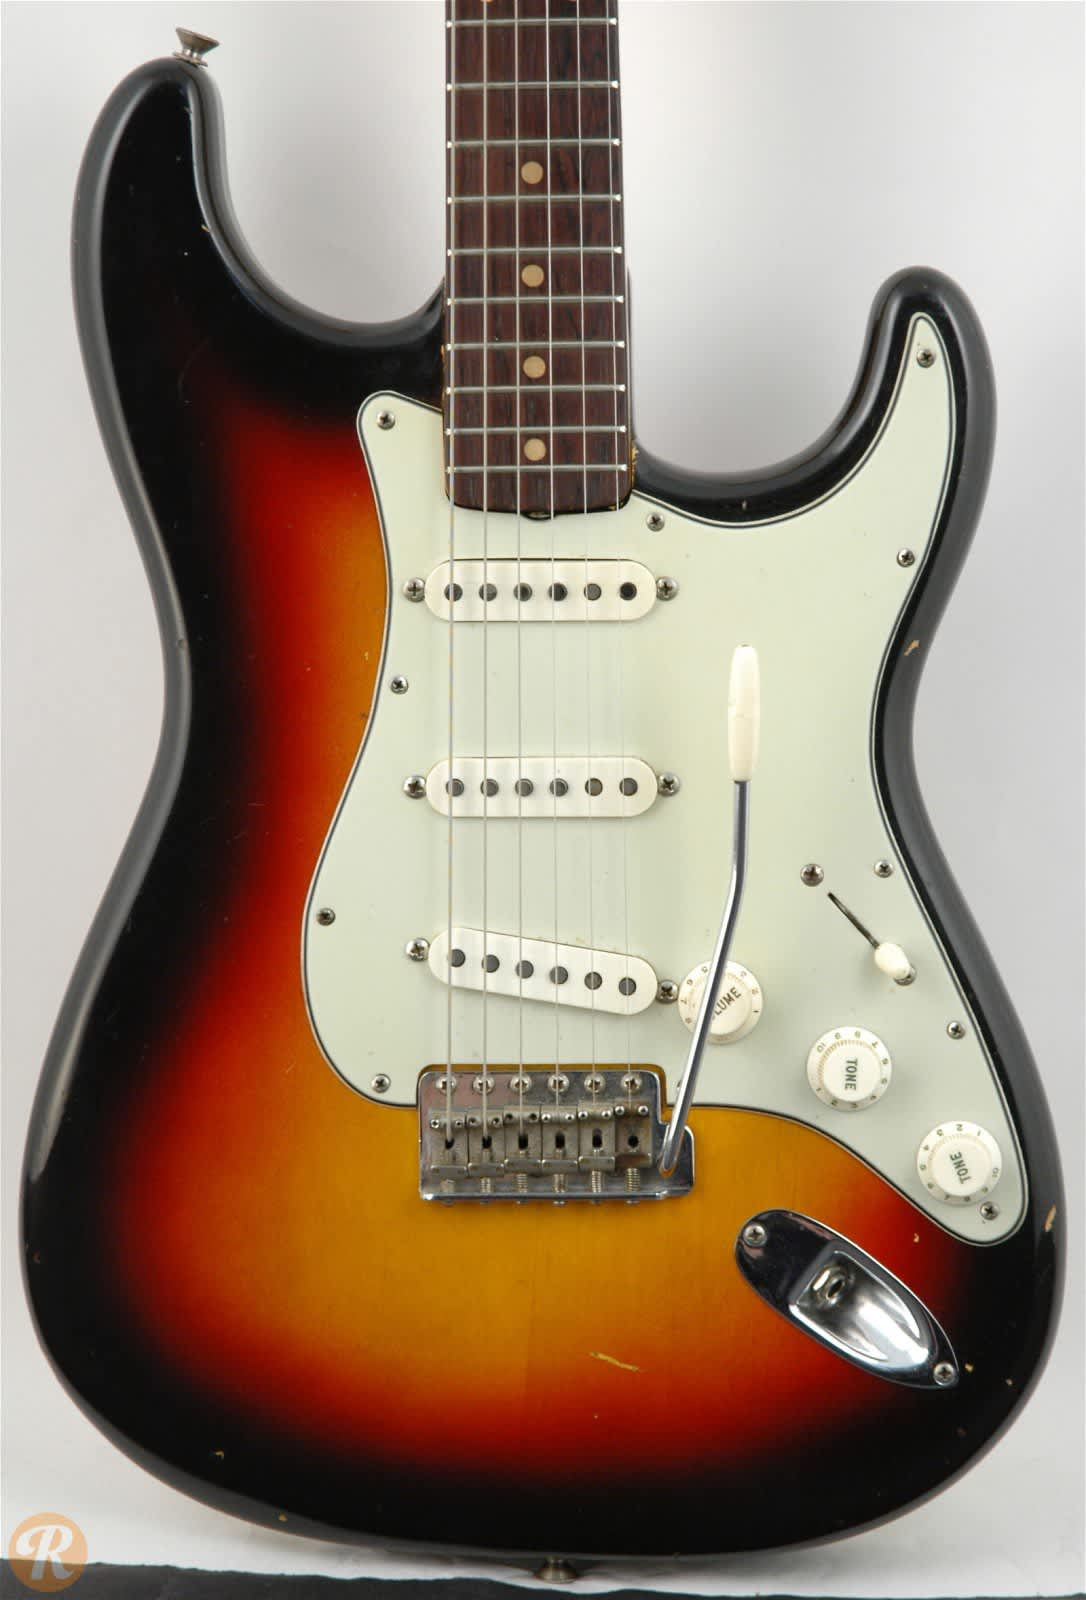 Auto Body Shops >> Fender Stratocaster 1962 Sunburst Price Guide | Reverb